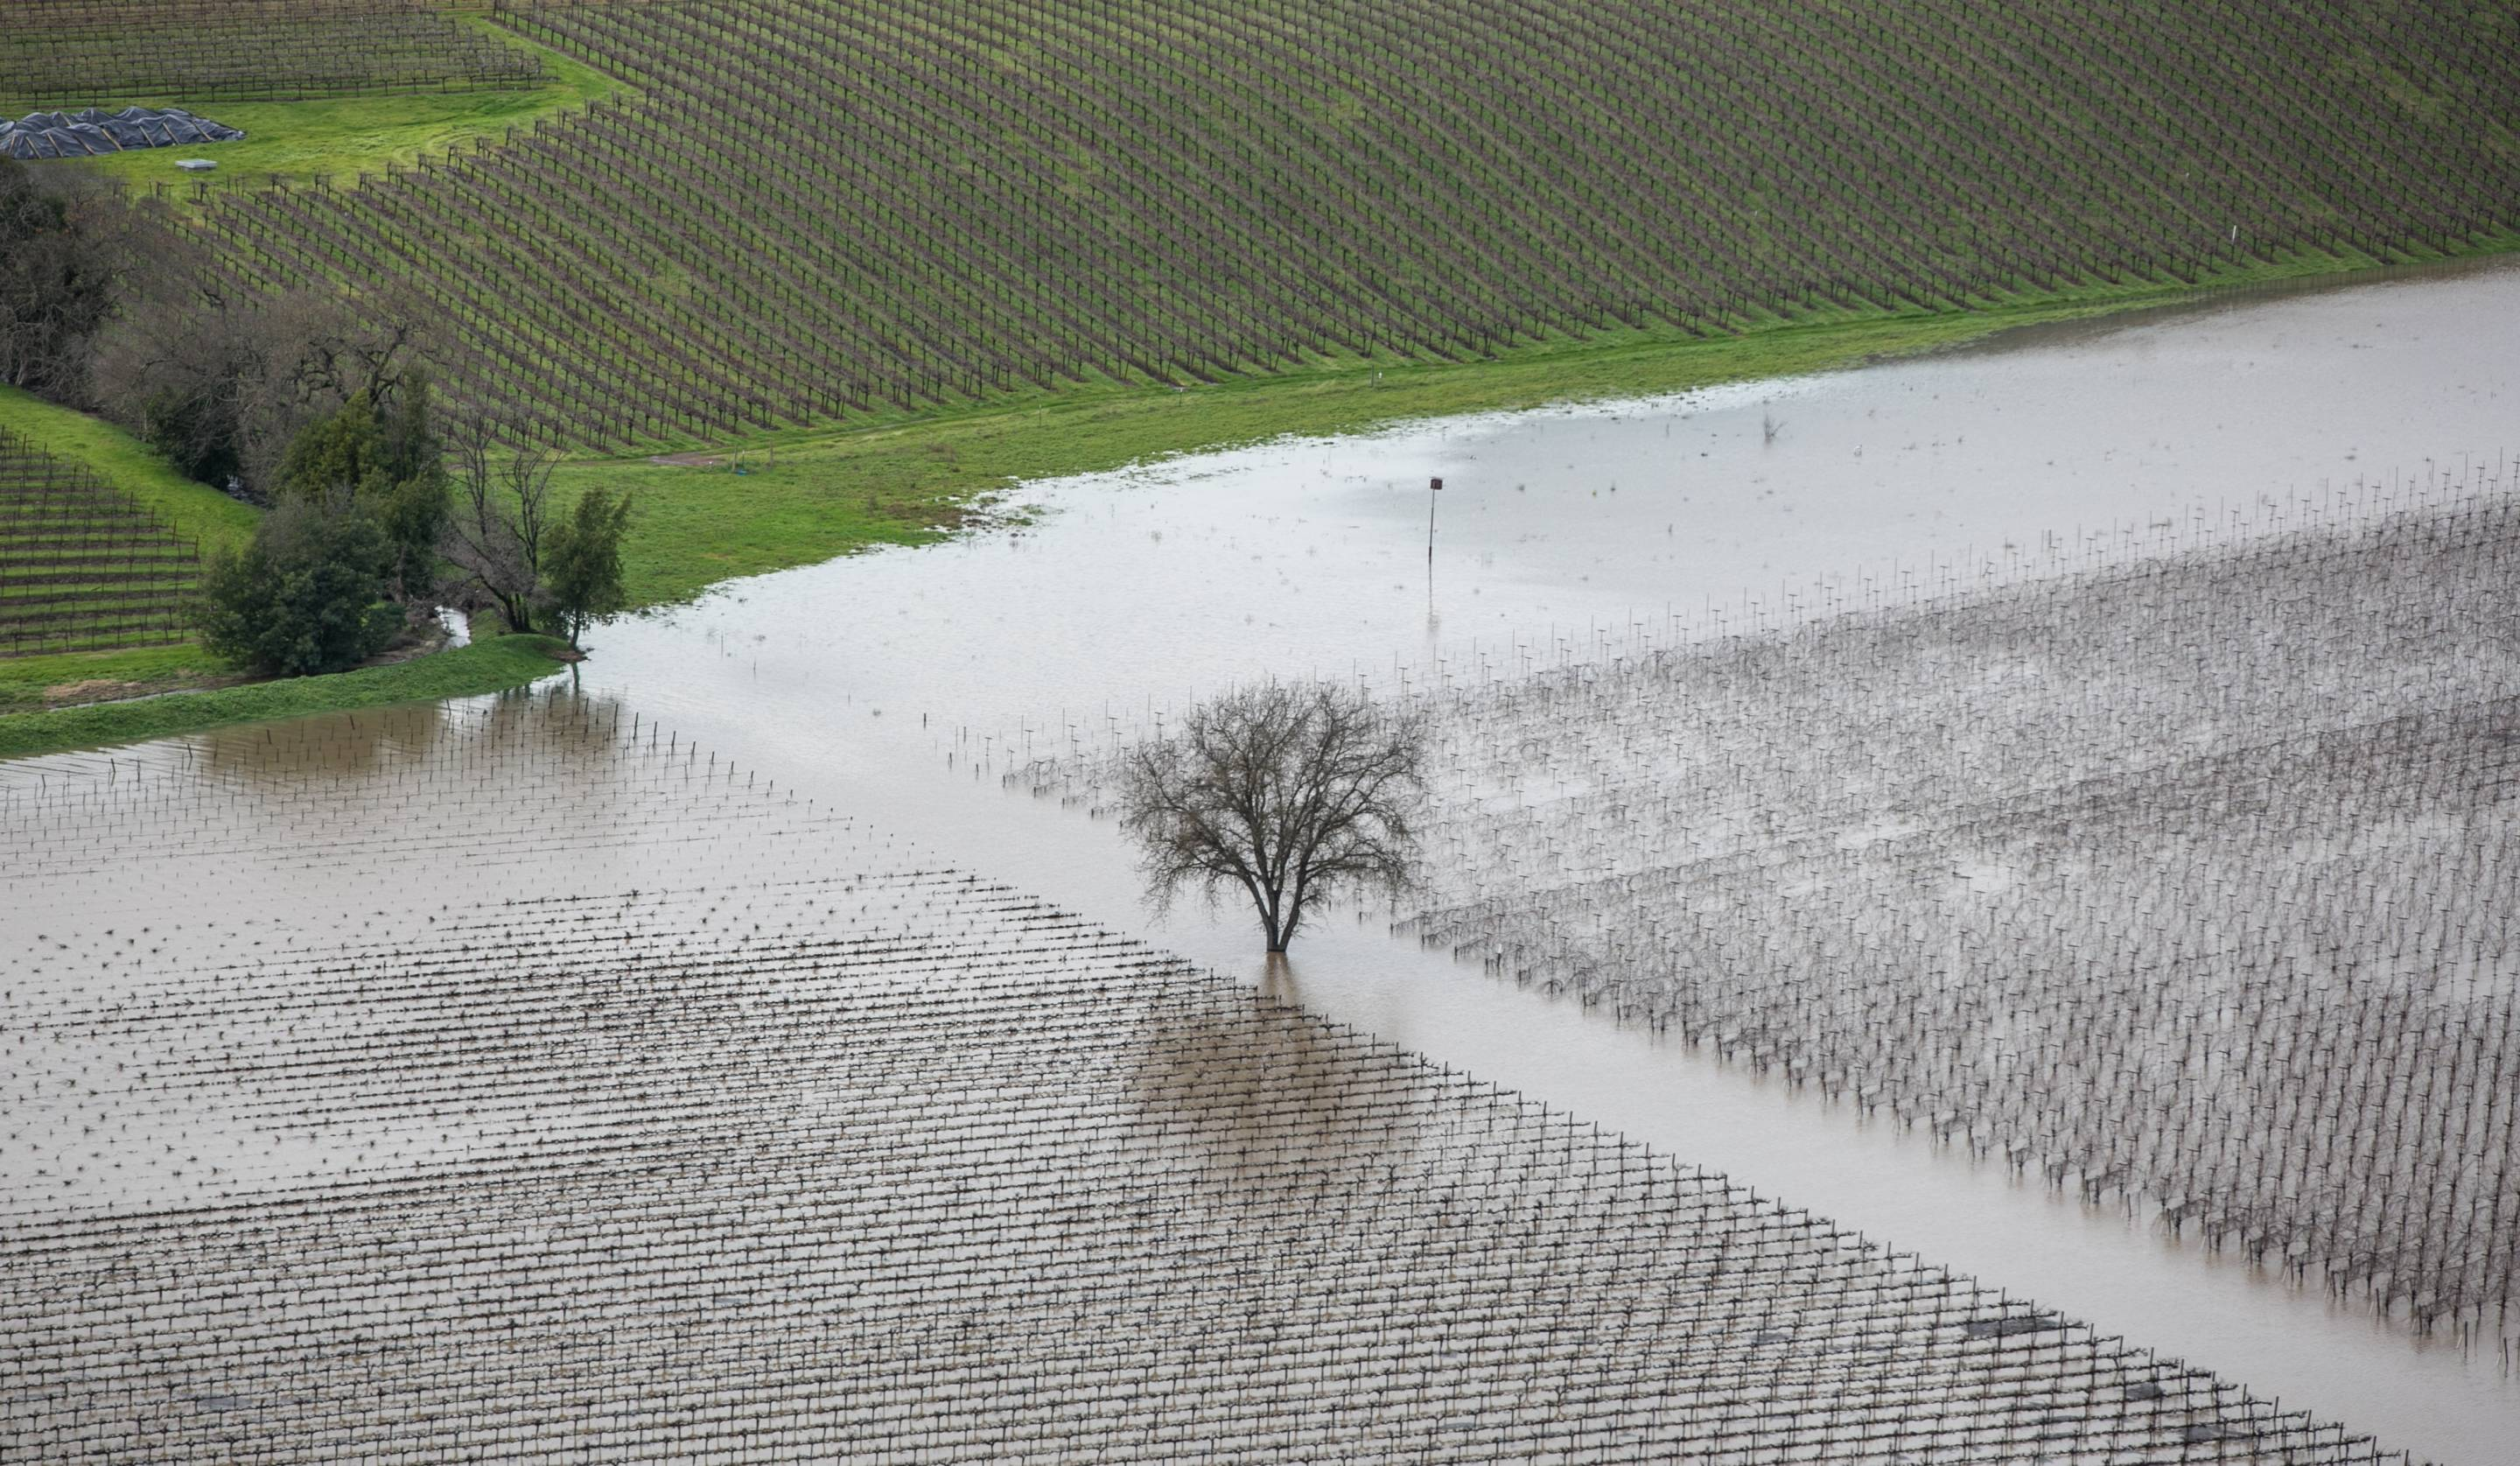 Vineyards and farmland are inundated by widespread flooding.